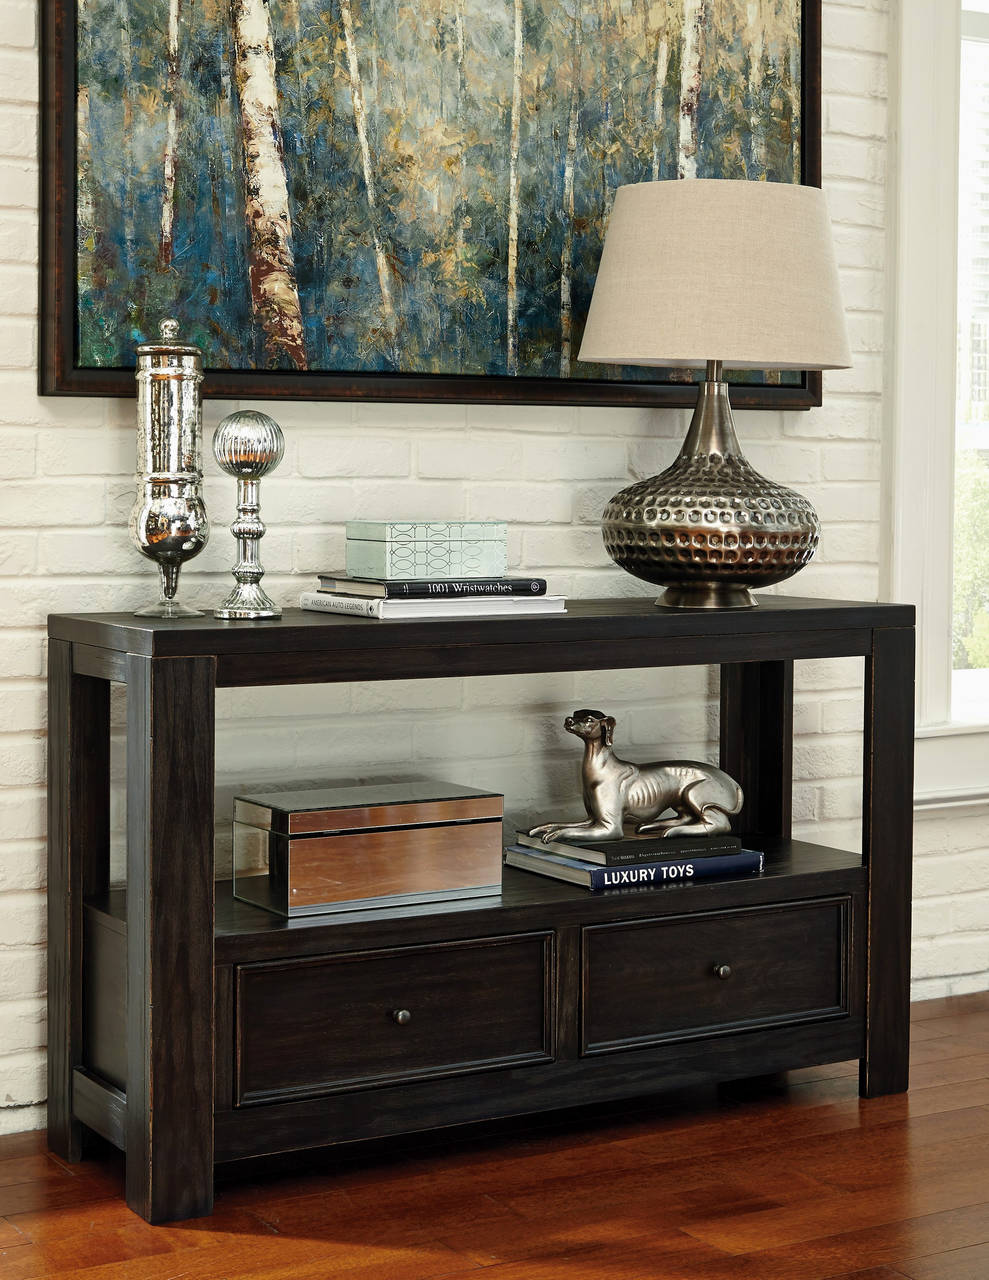 diy charging station plans lovely elegant accent table ideas coffee with storage free topper quilt patterns rose gold floor lamp inexpensive side tables rectangle patio cover